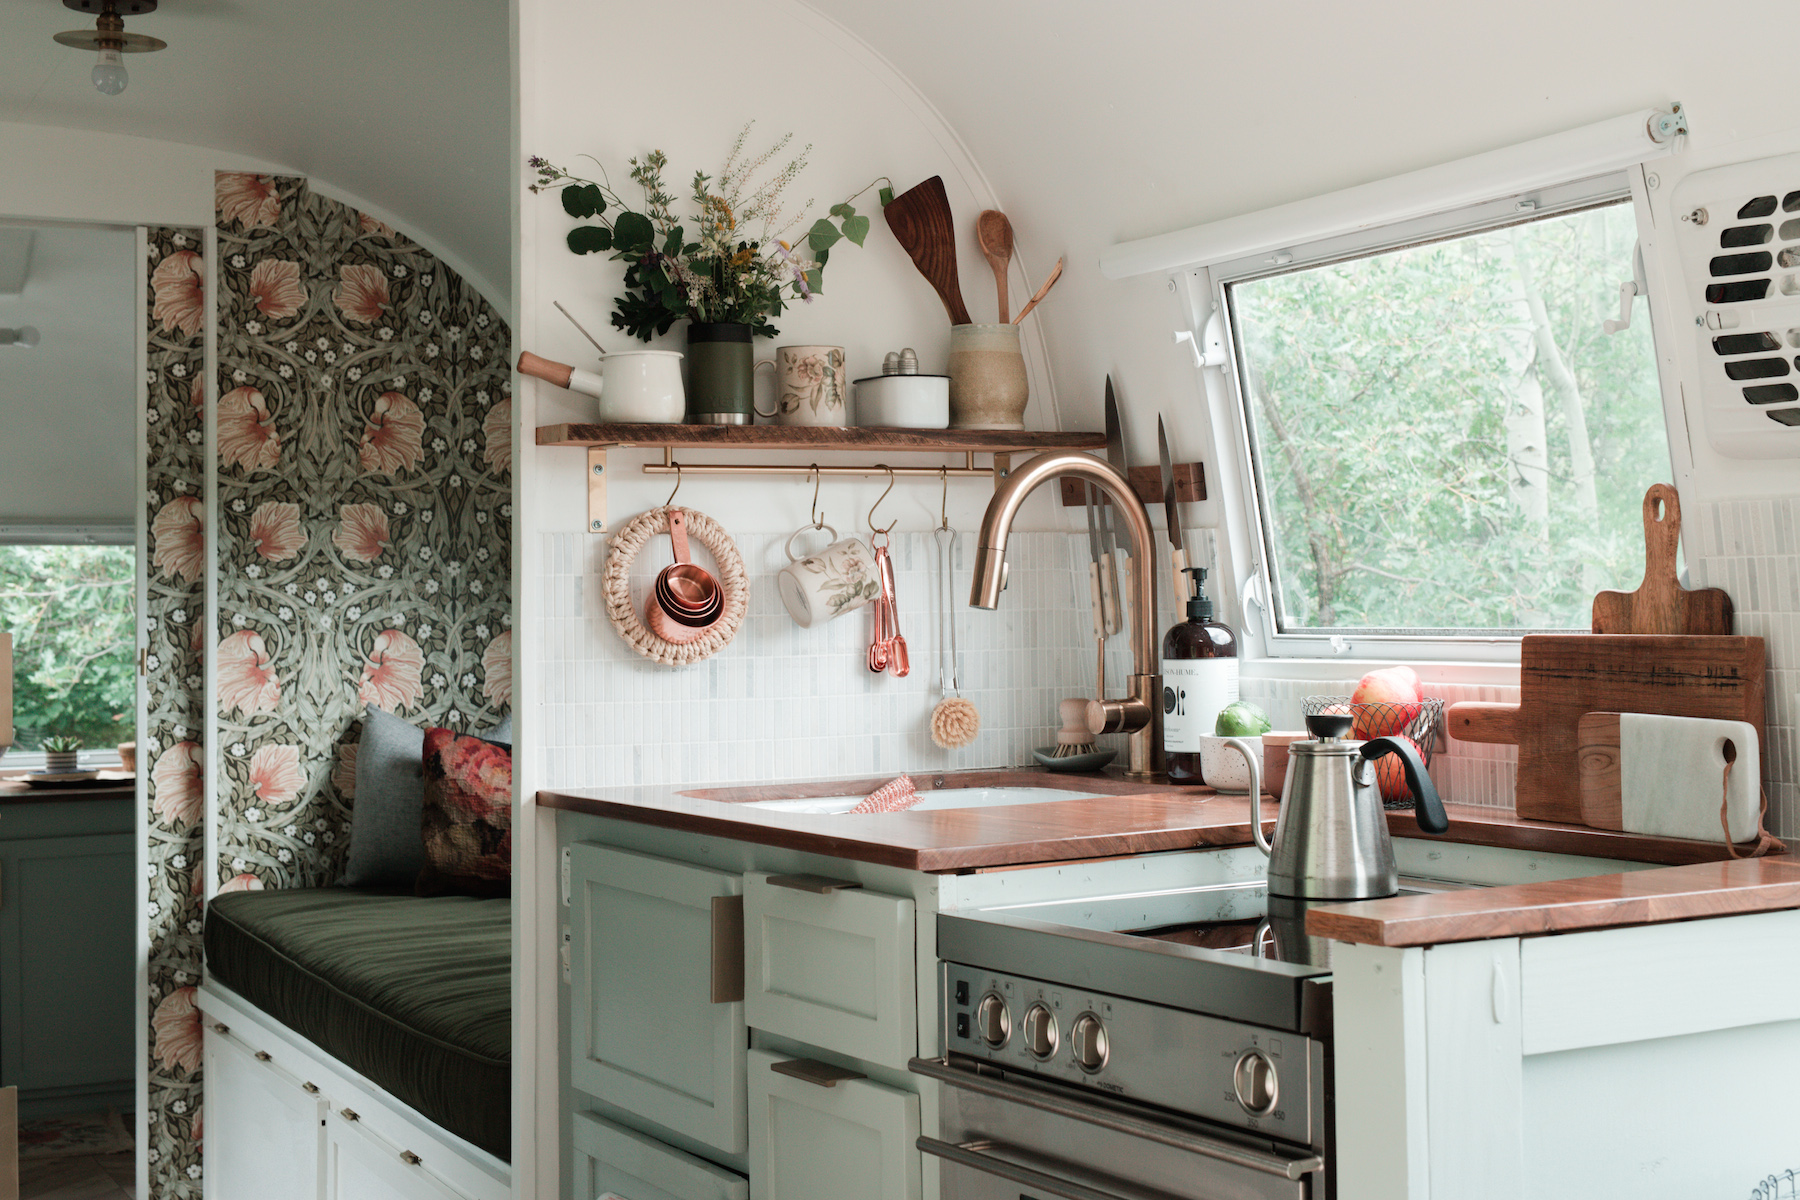 A Dreamy 1962 Airstream Trailer Wallpapered with Florals